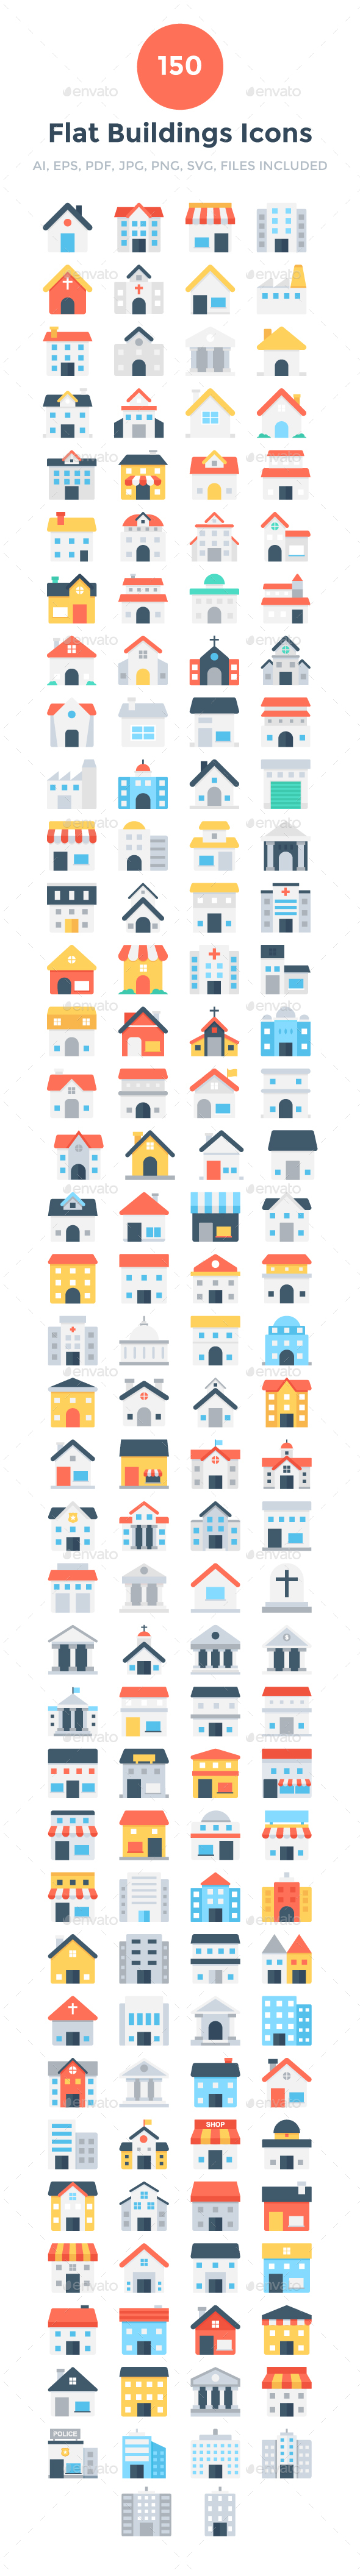 150 Flat Buildings Icons - Icons